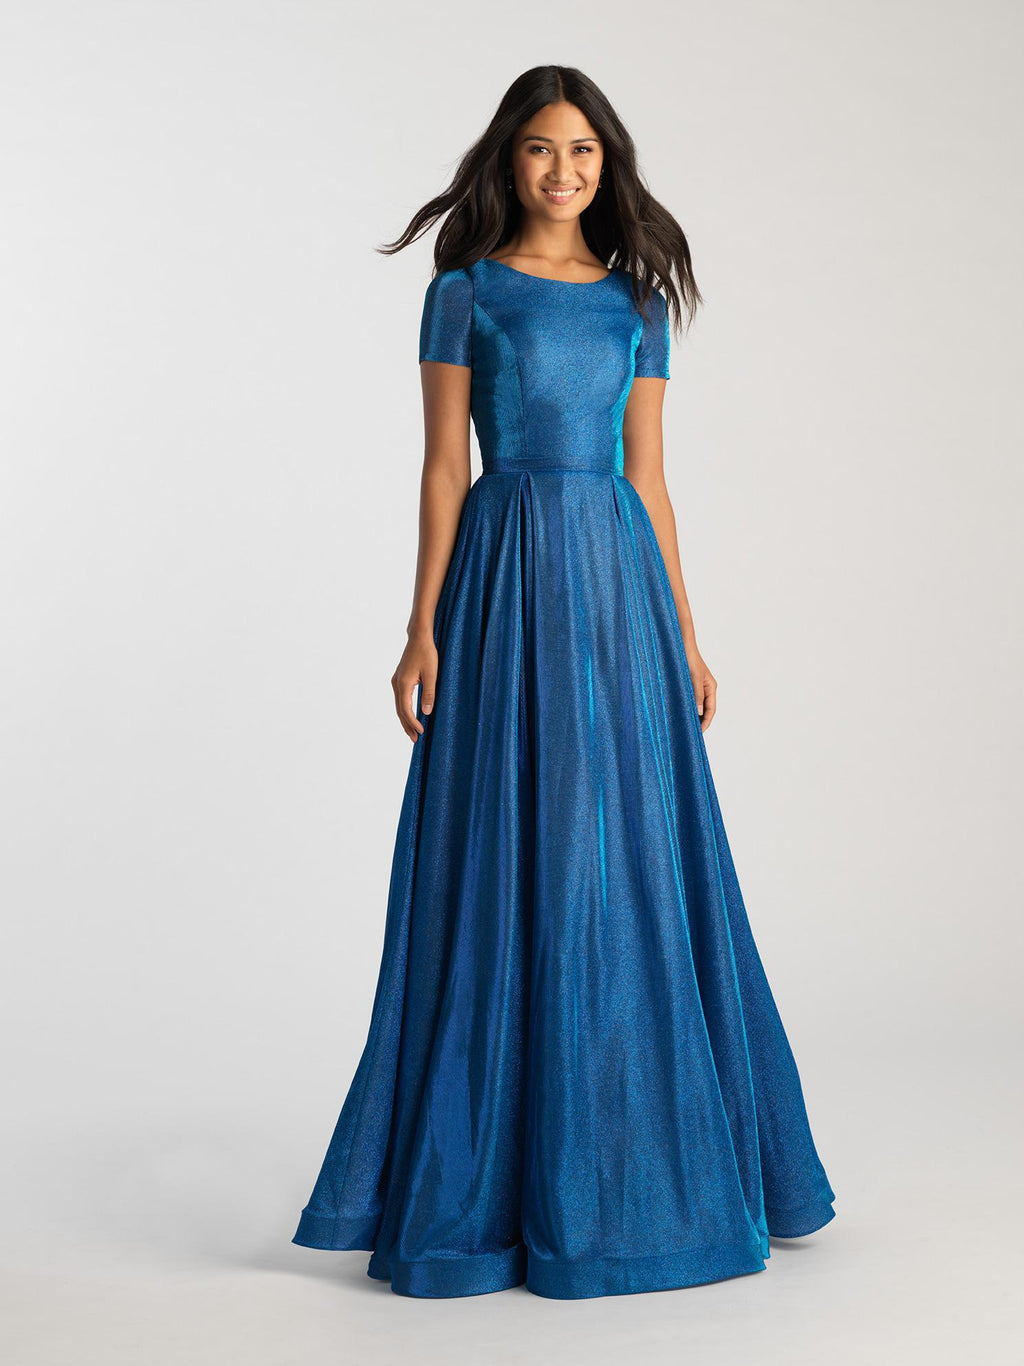 MJ19-261 modest prom dress royal blue gold formal gown with sleeves